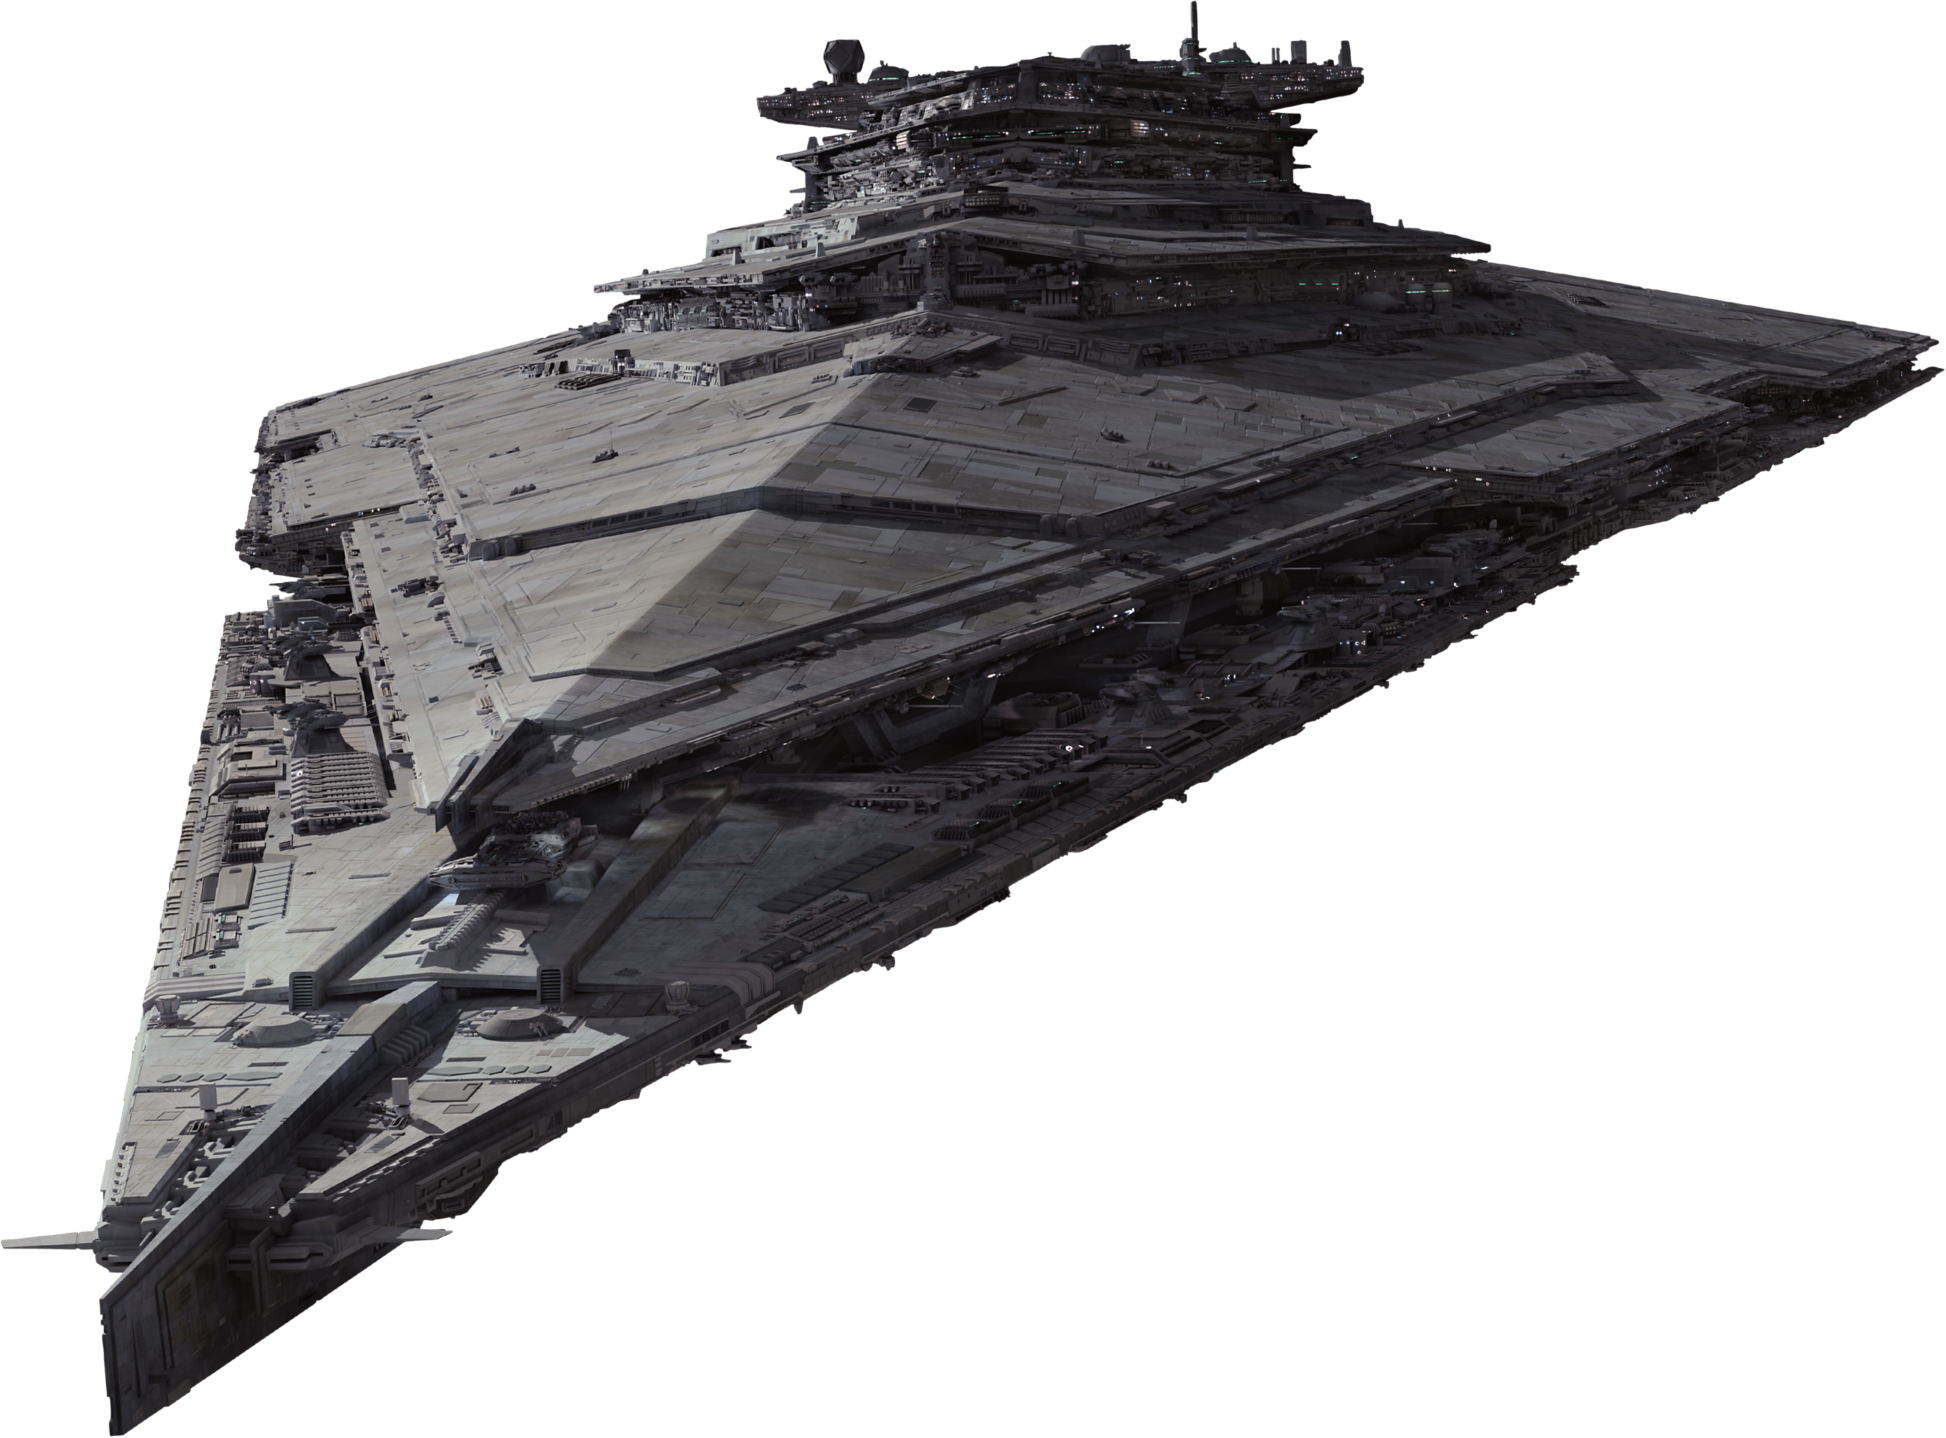 the finalizer first order star destroyer star wars the force awakens spacecraft cut out with. Black Bedroom Furniture Sets. Home Design Ideas